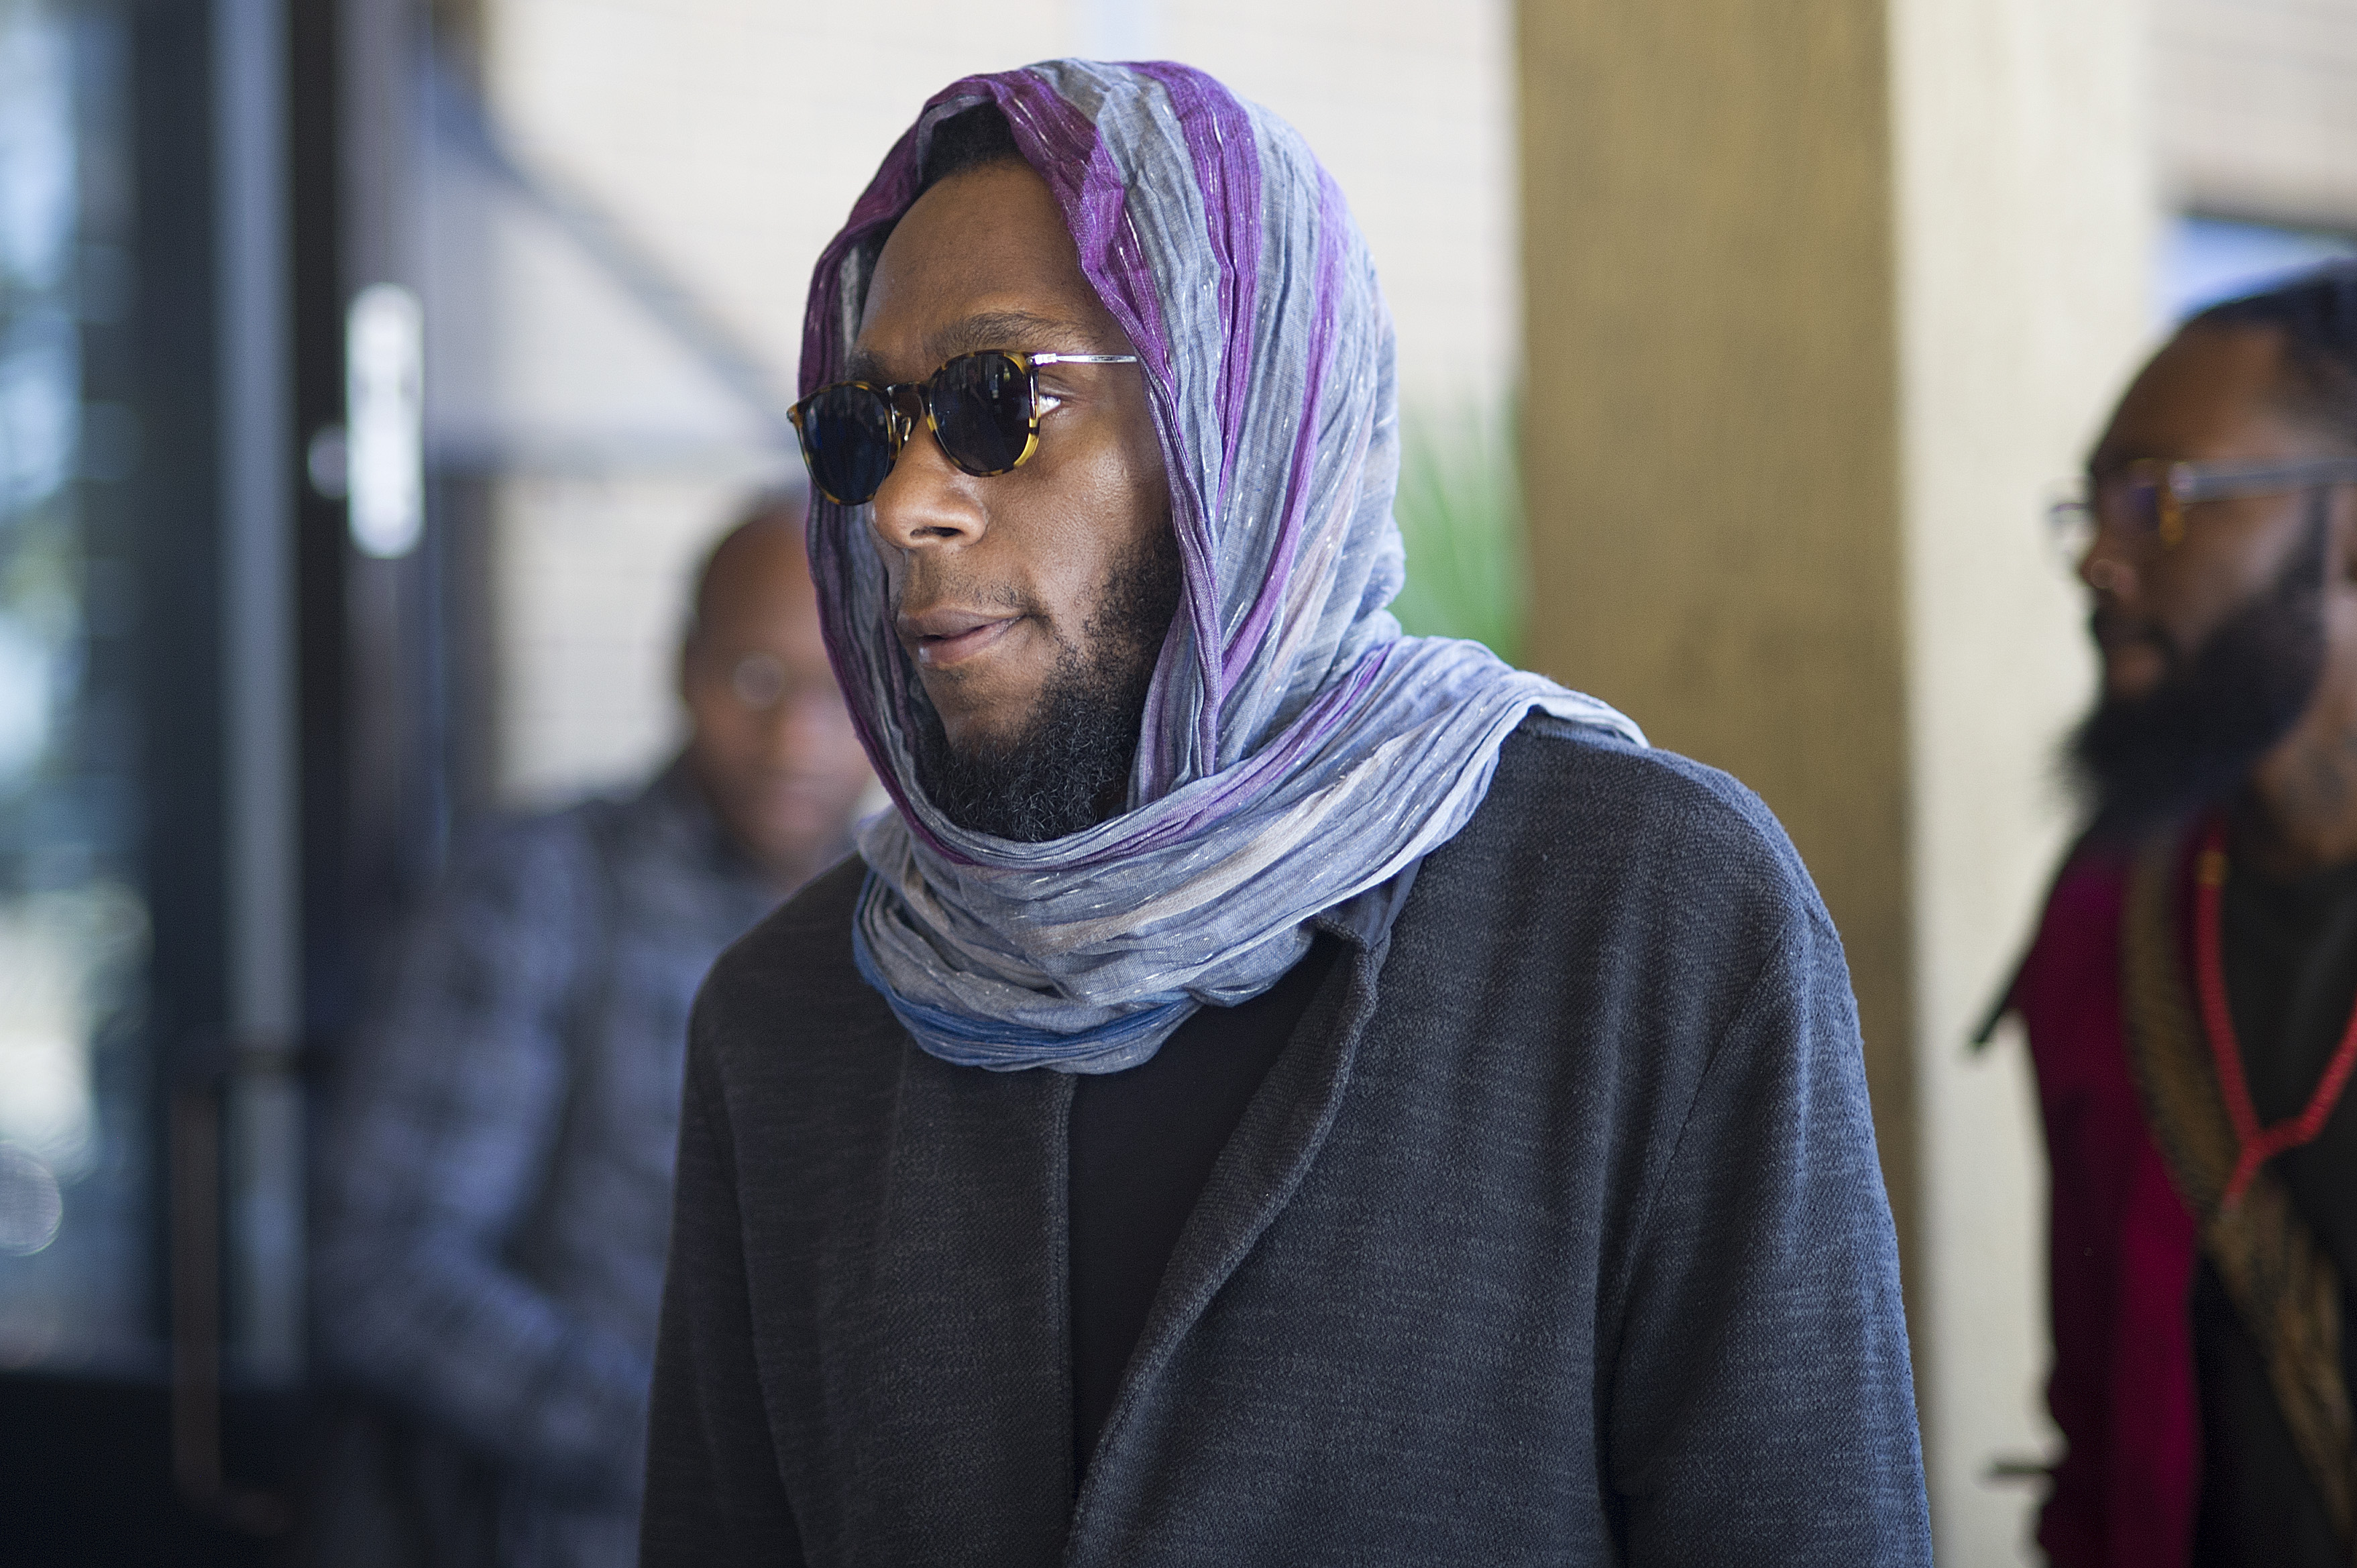 Hip hop artist and actor, Yasiin Bey, known as Mos Def, walks into the Bellville Magistrates Court, to appear for contravening South African immigration laws, on March 8, 2016, in Cape Town.